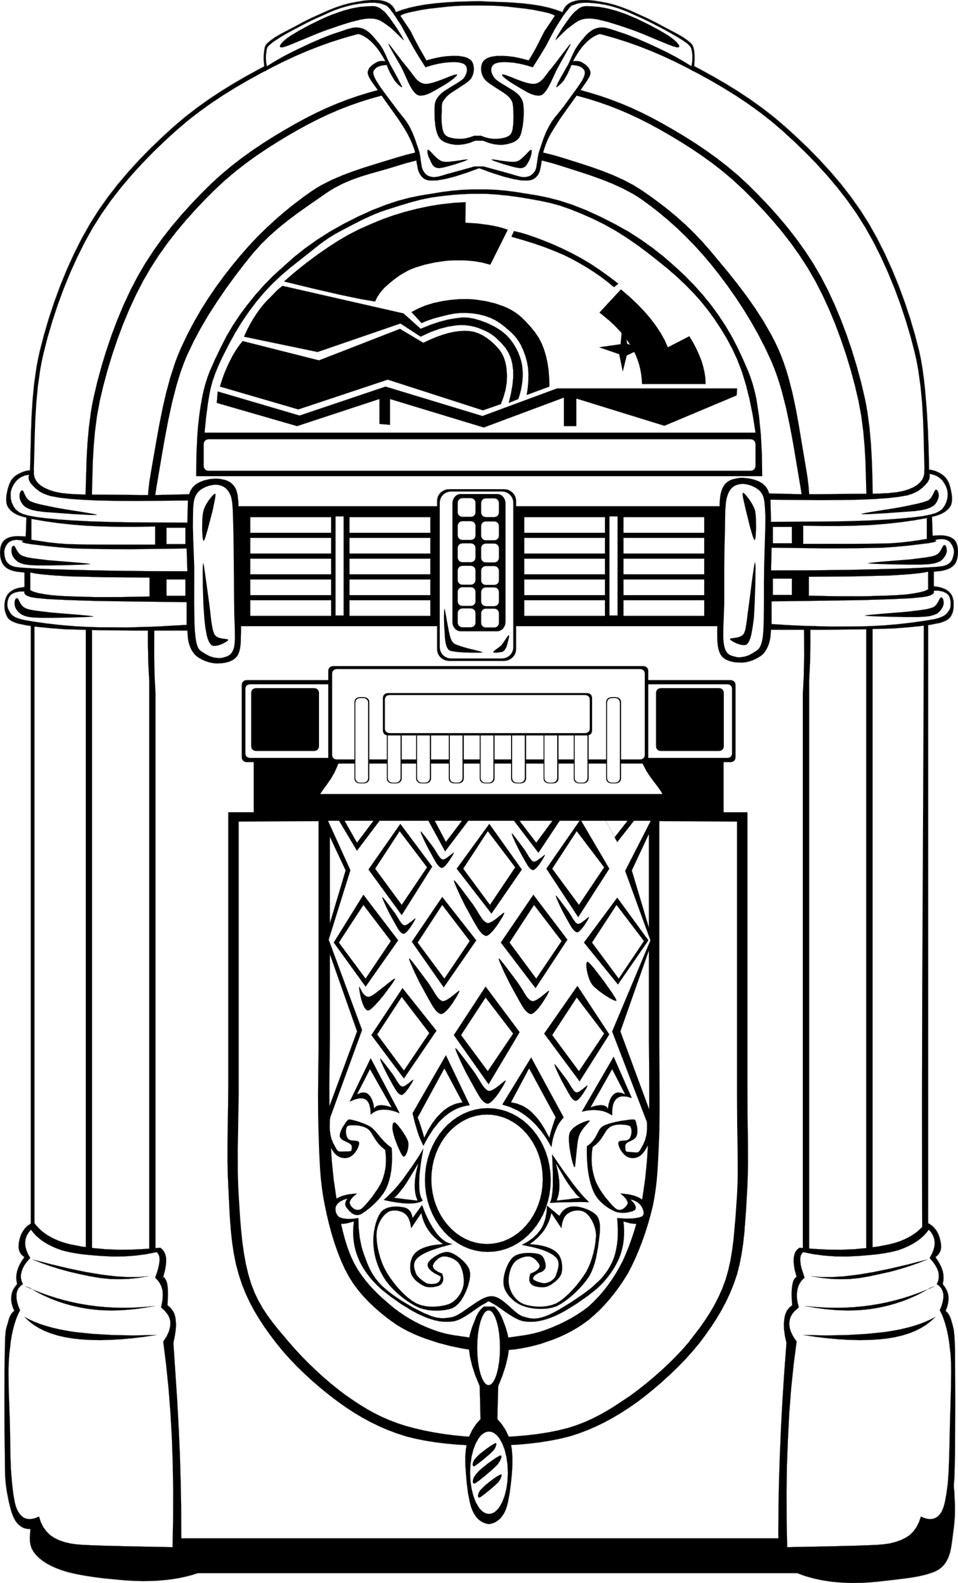 clipart library download Jukebox drawing. Public domain clip art